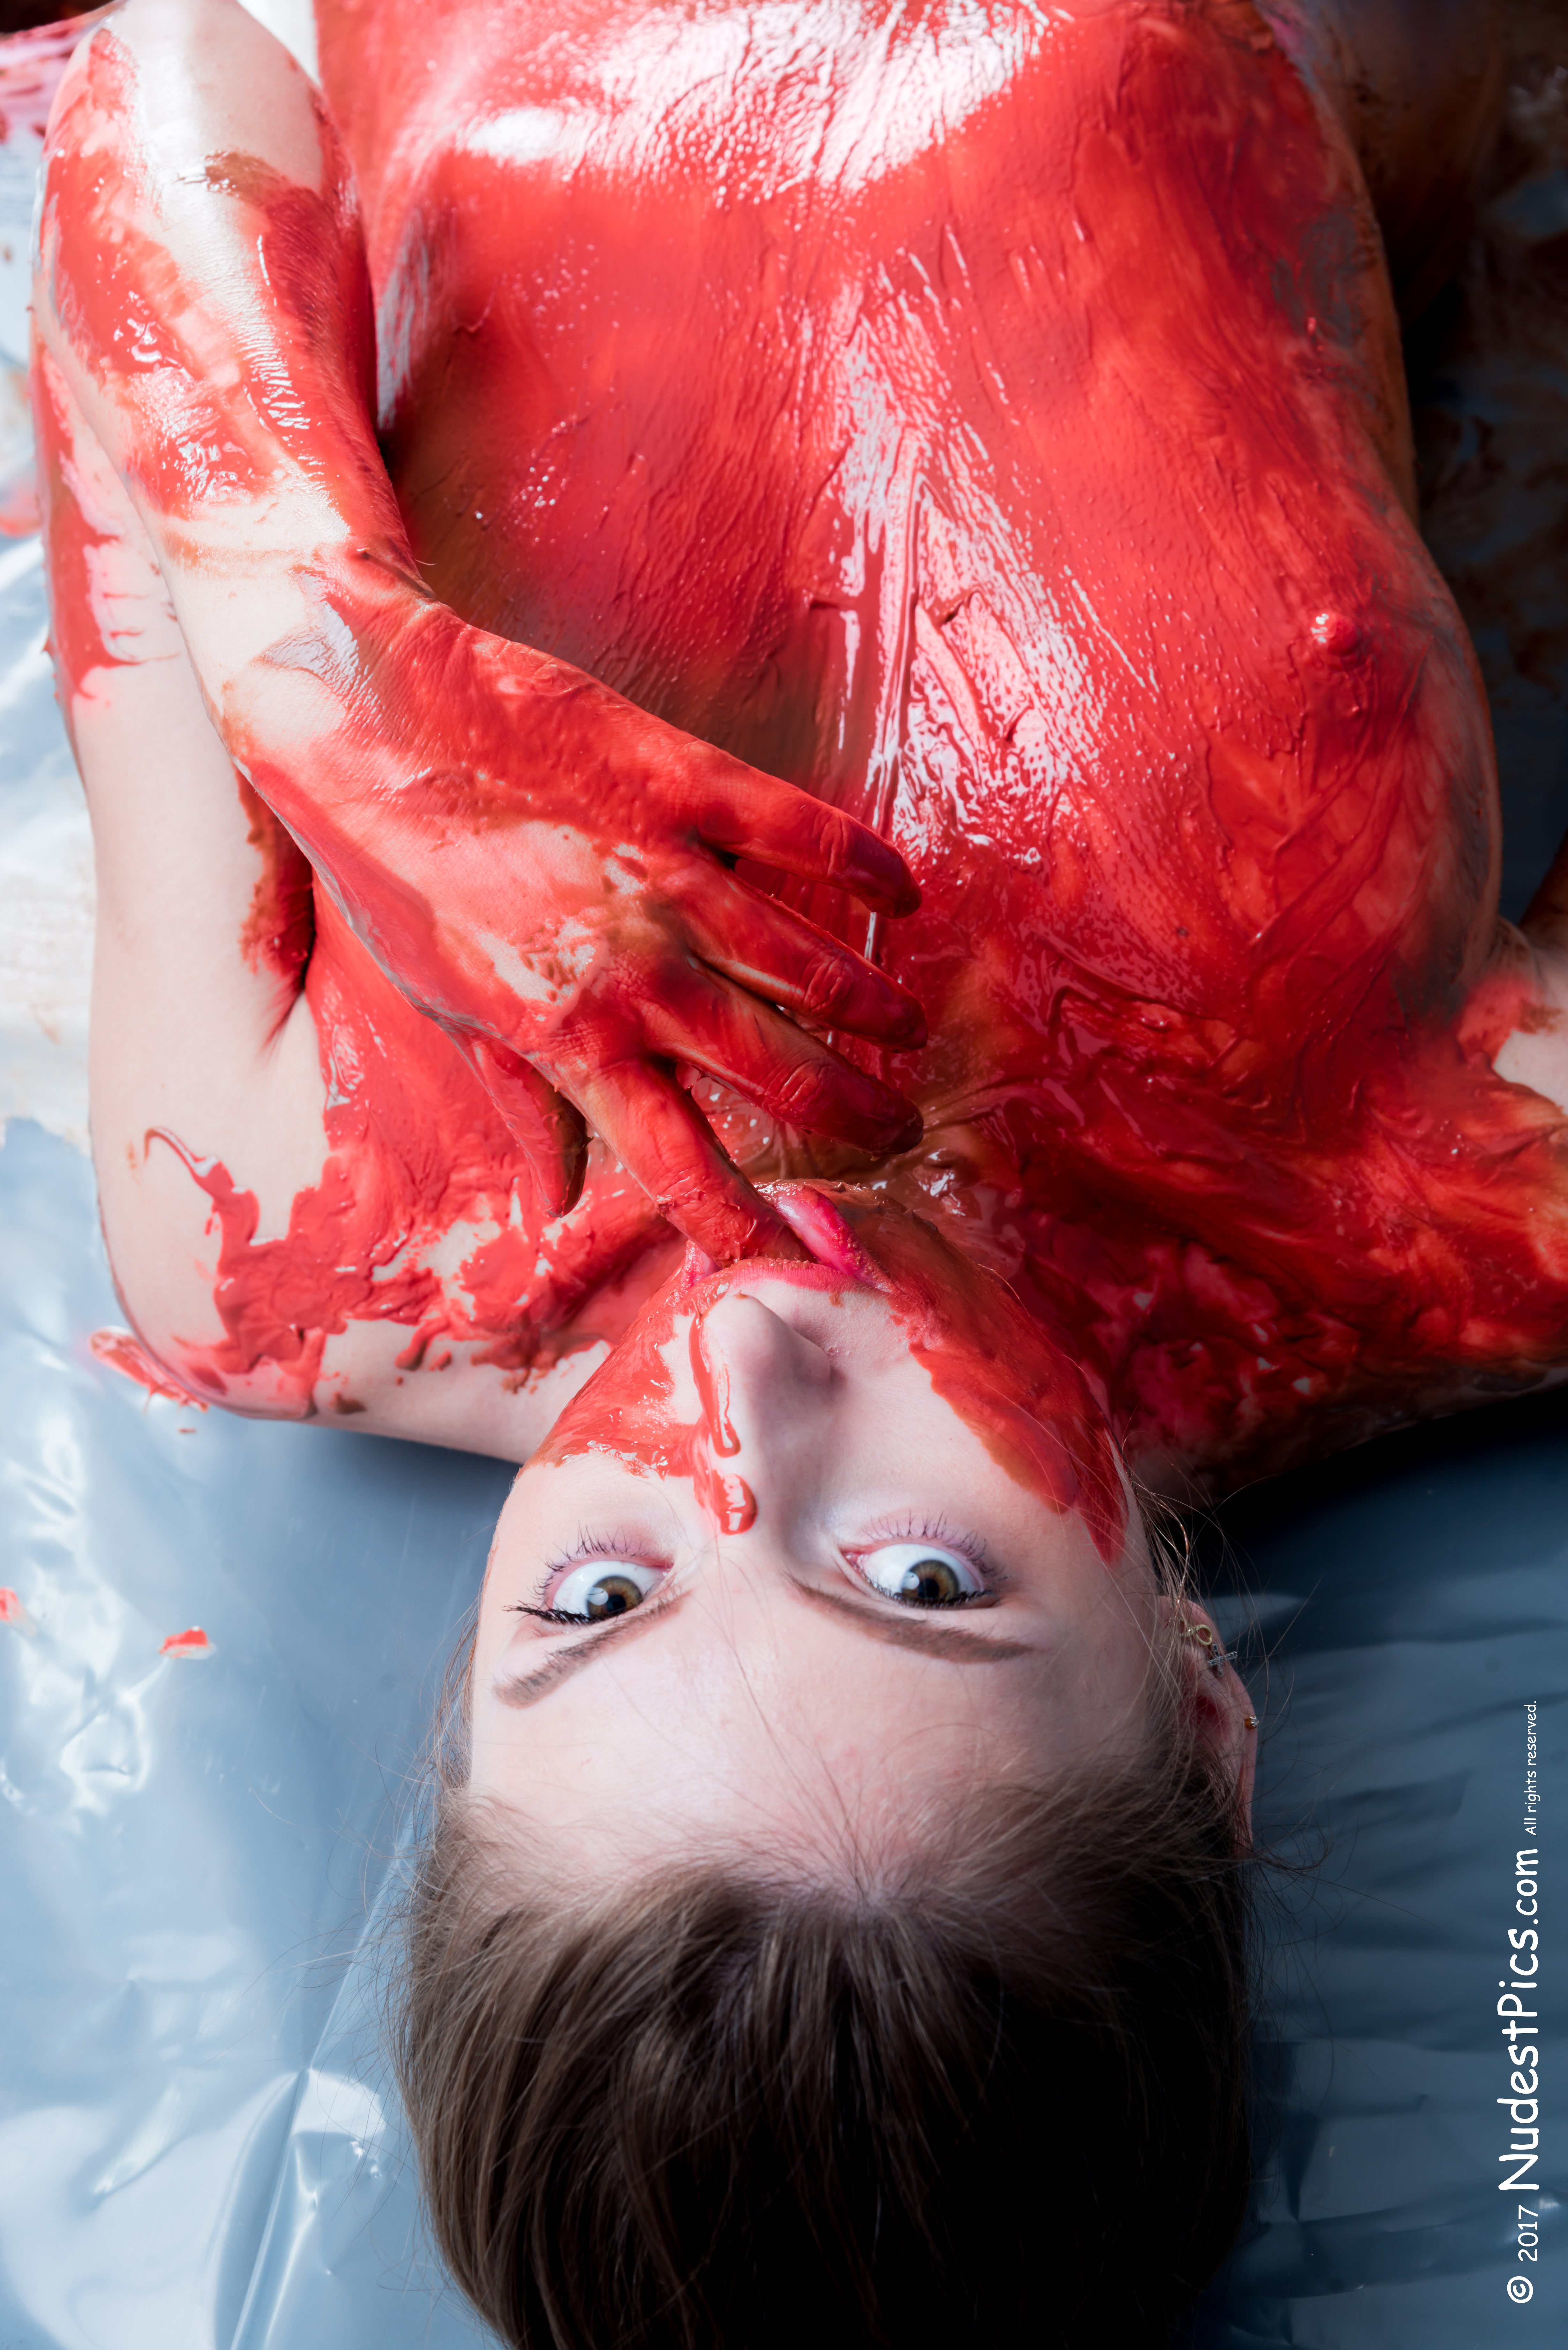 Topless Vampire Girl Covered in Blood Clots HD